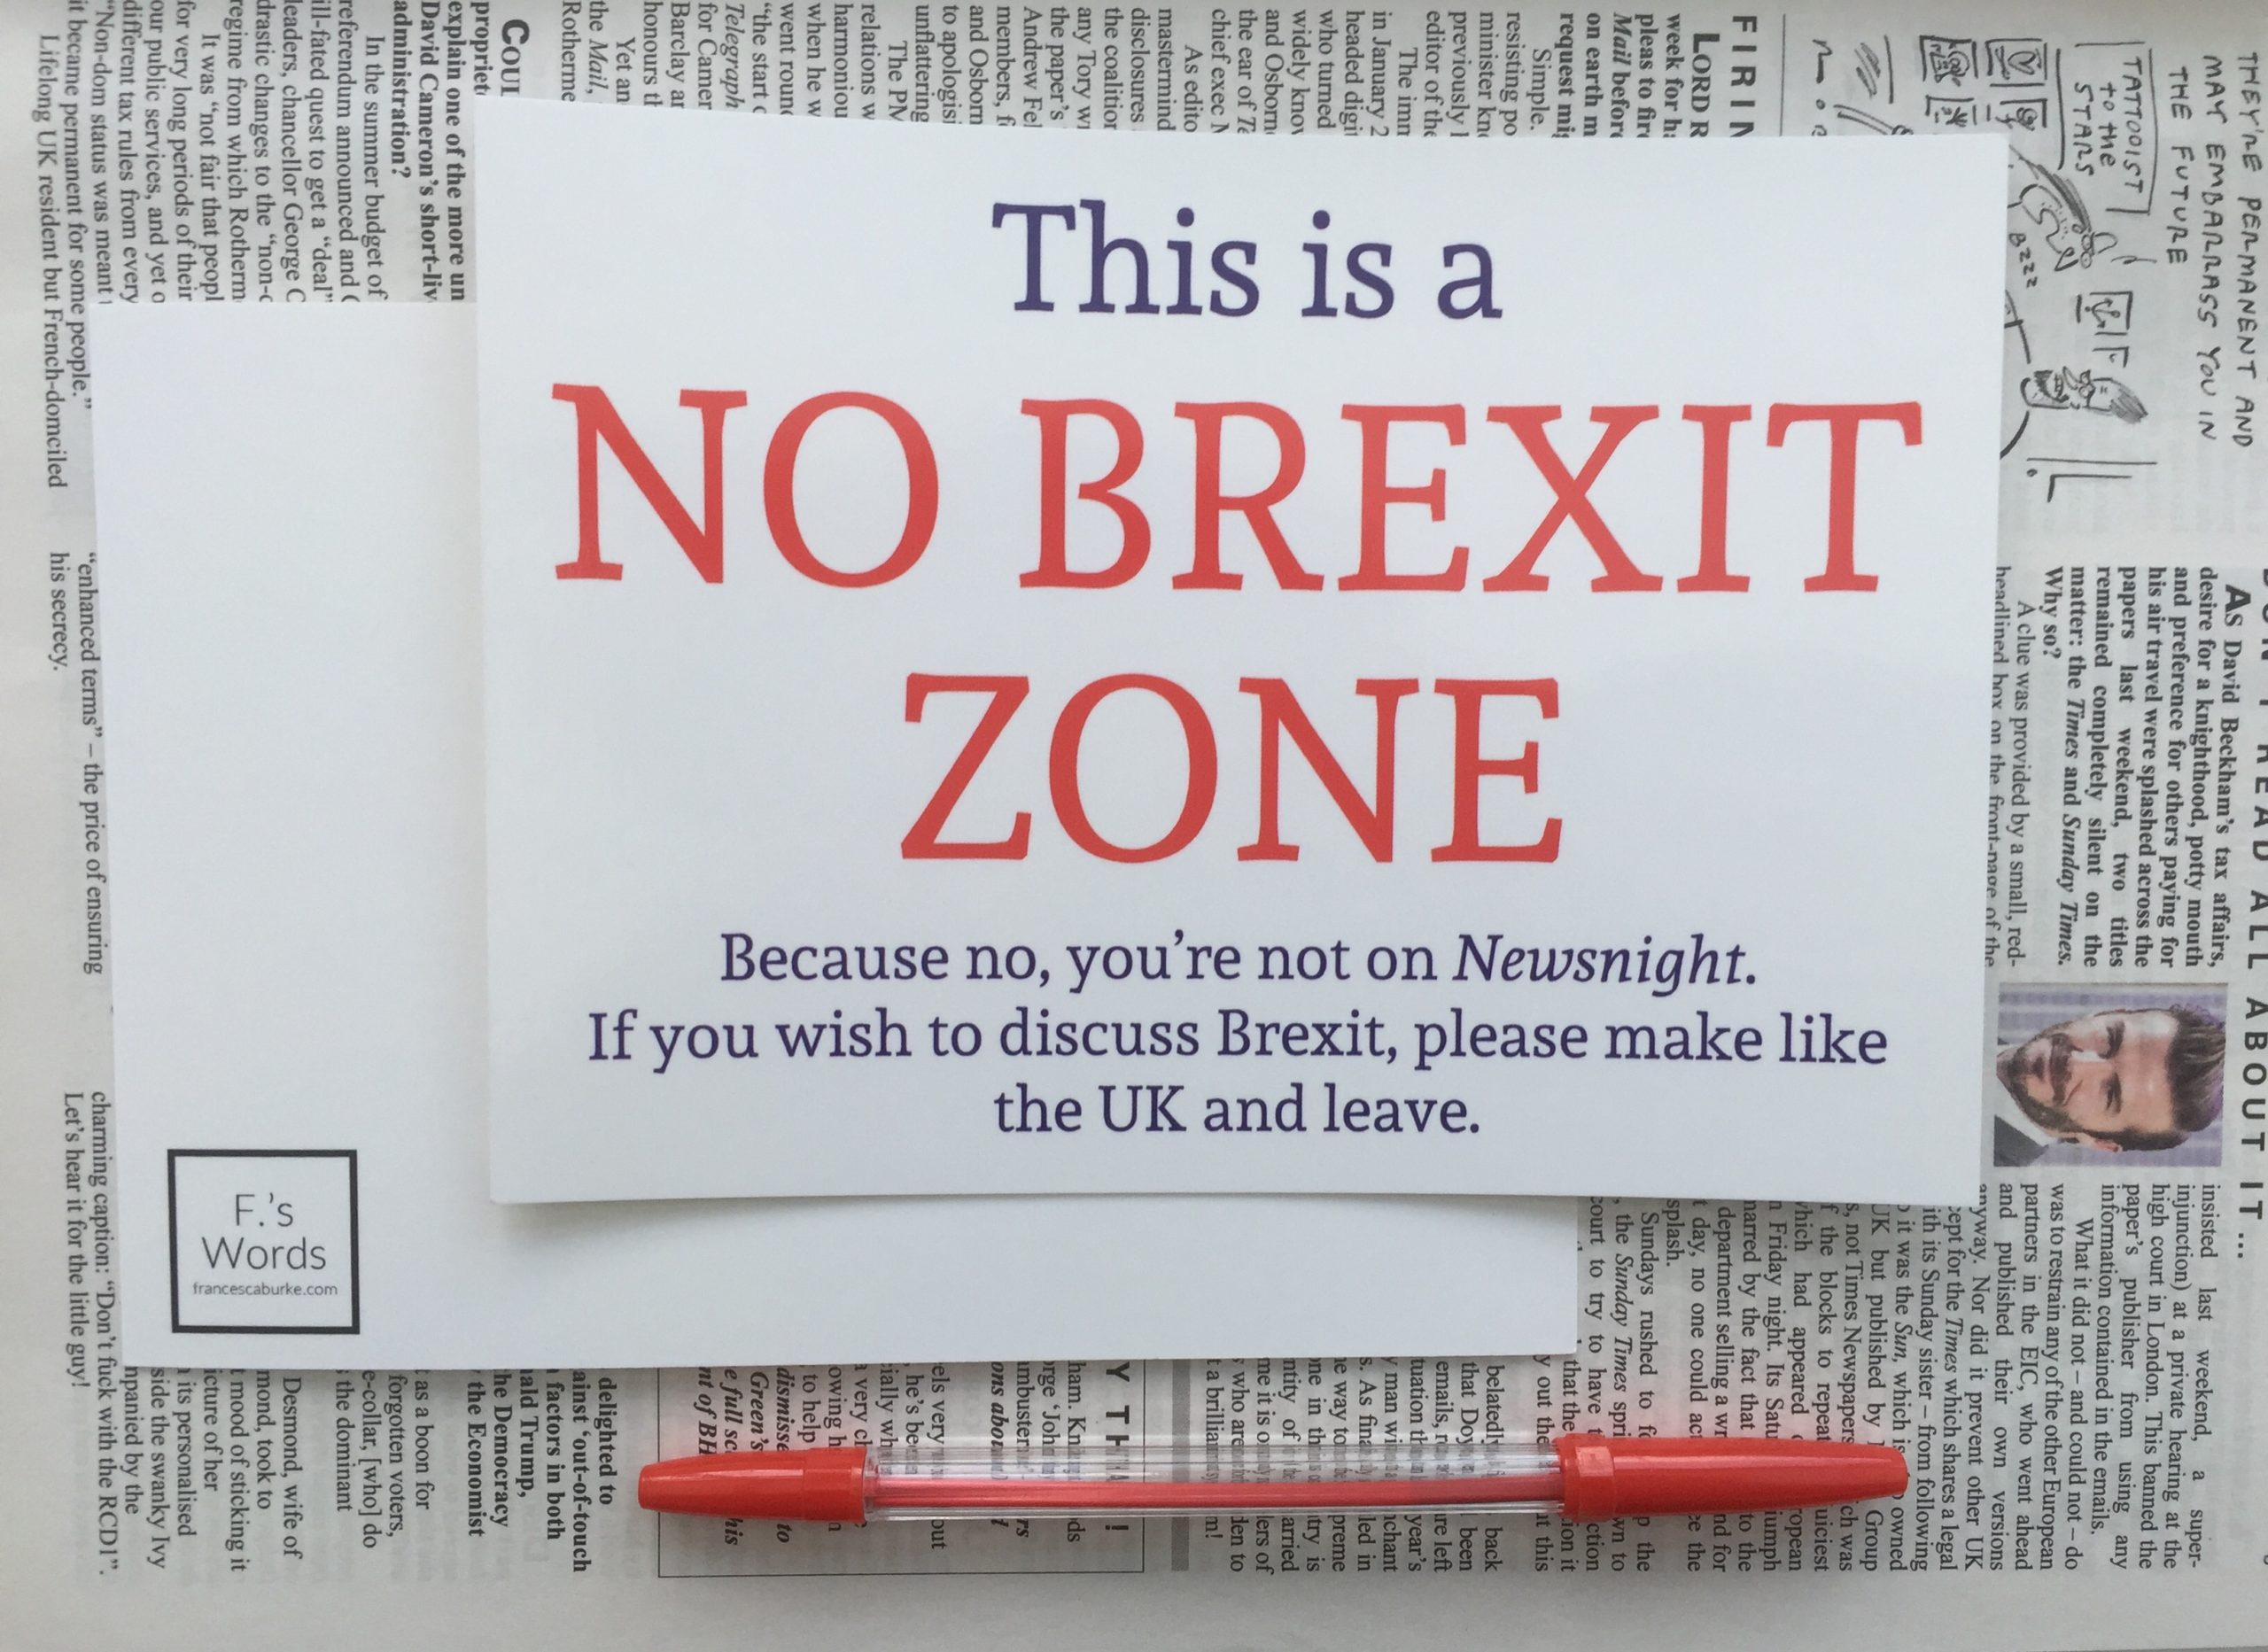 Print reading 'This is a No Brexit Zone'